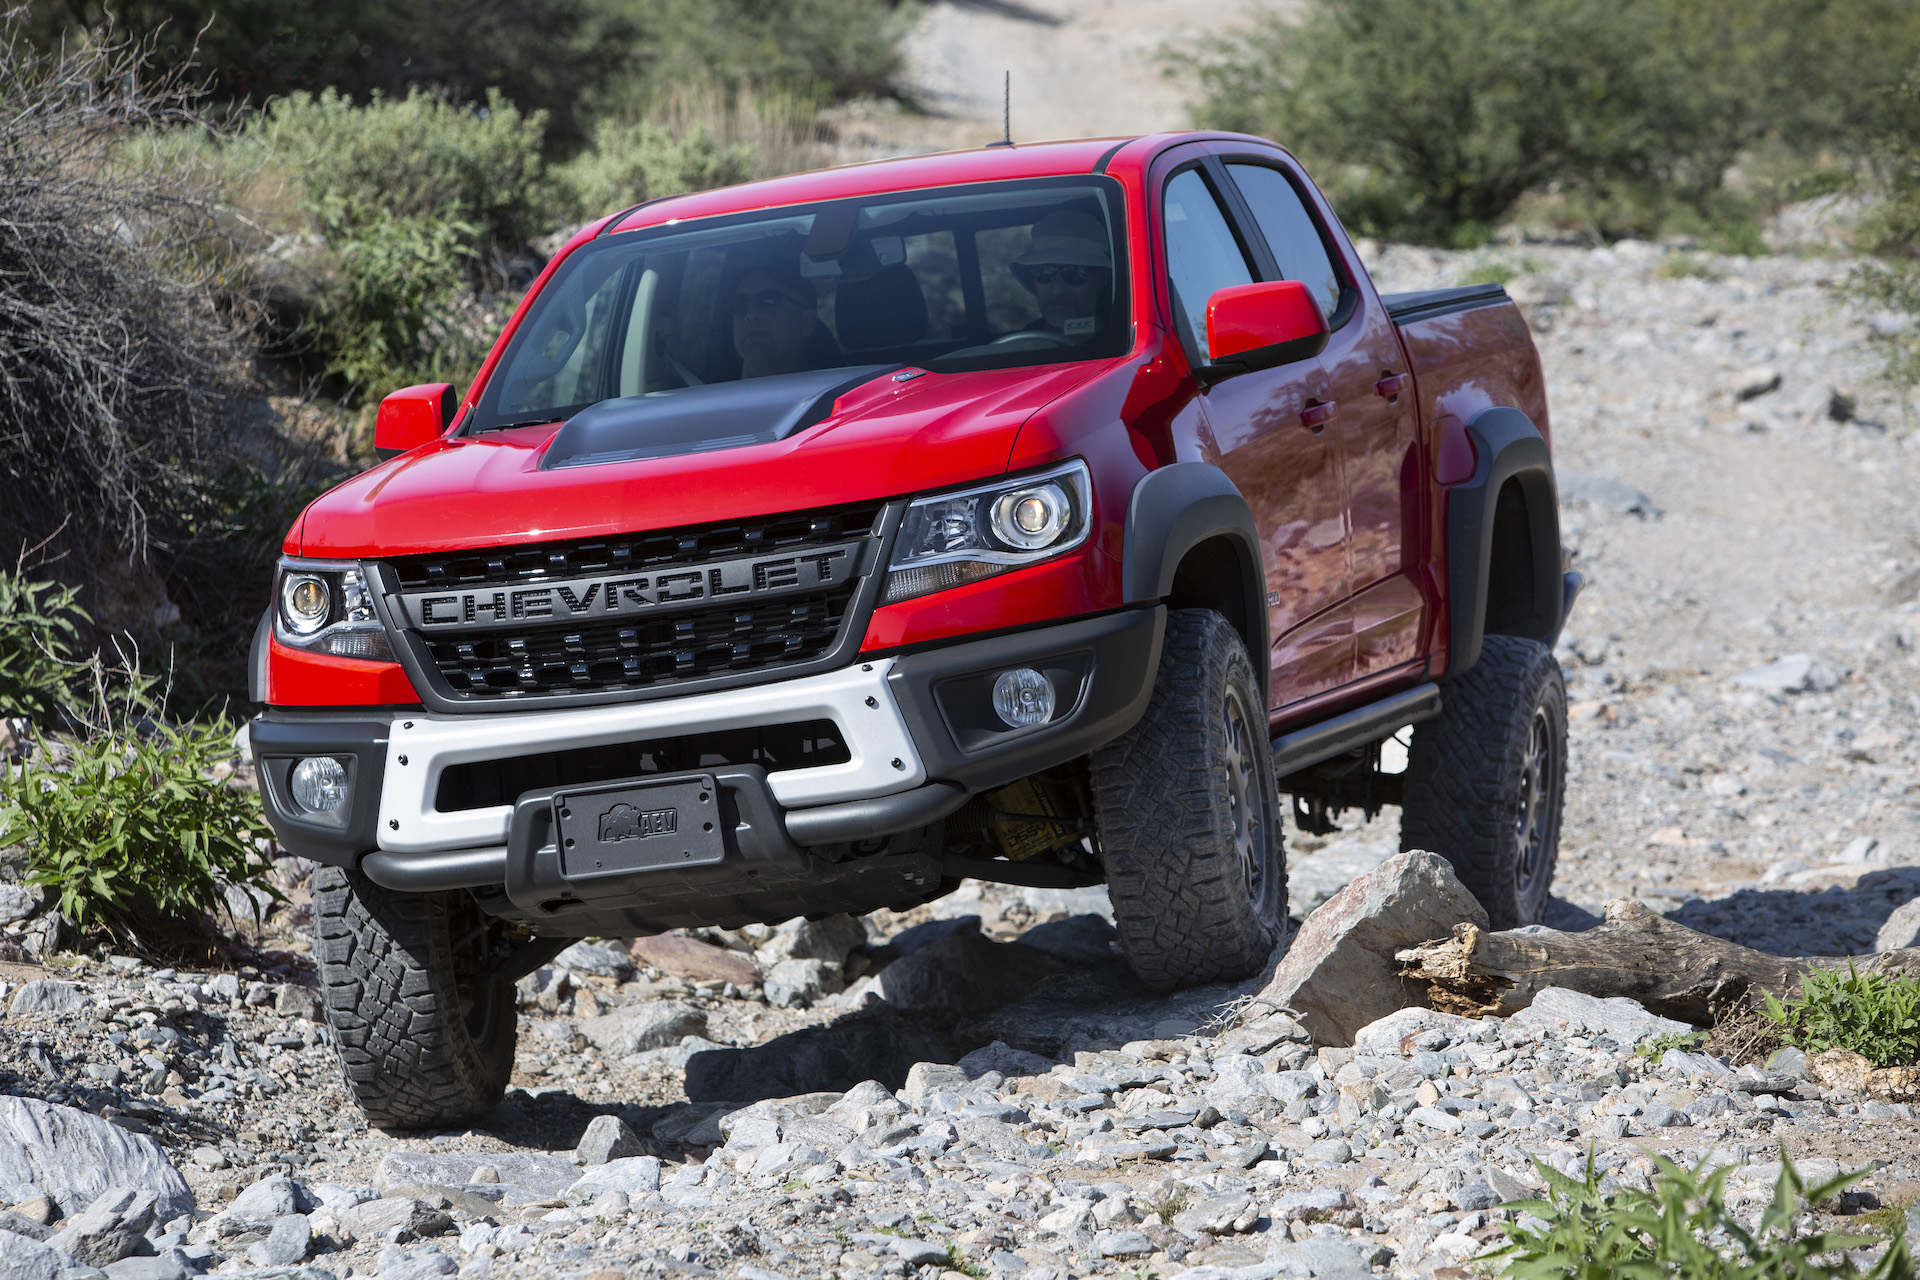 2019 Chevrolet Colorado Zr2 Bison First Drive: Heavy Hitting 2022 Chevy Colorado Zr2 Bison Review, Front Bumper, Diesel